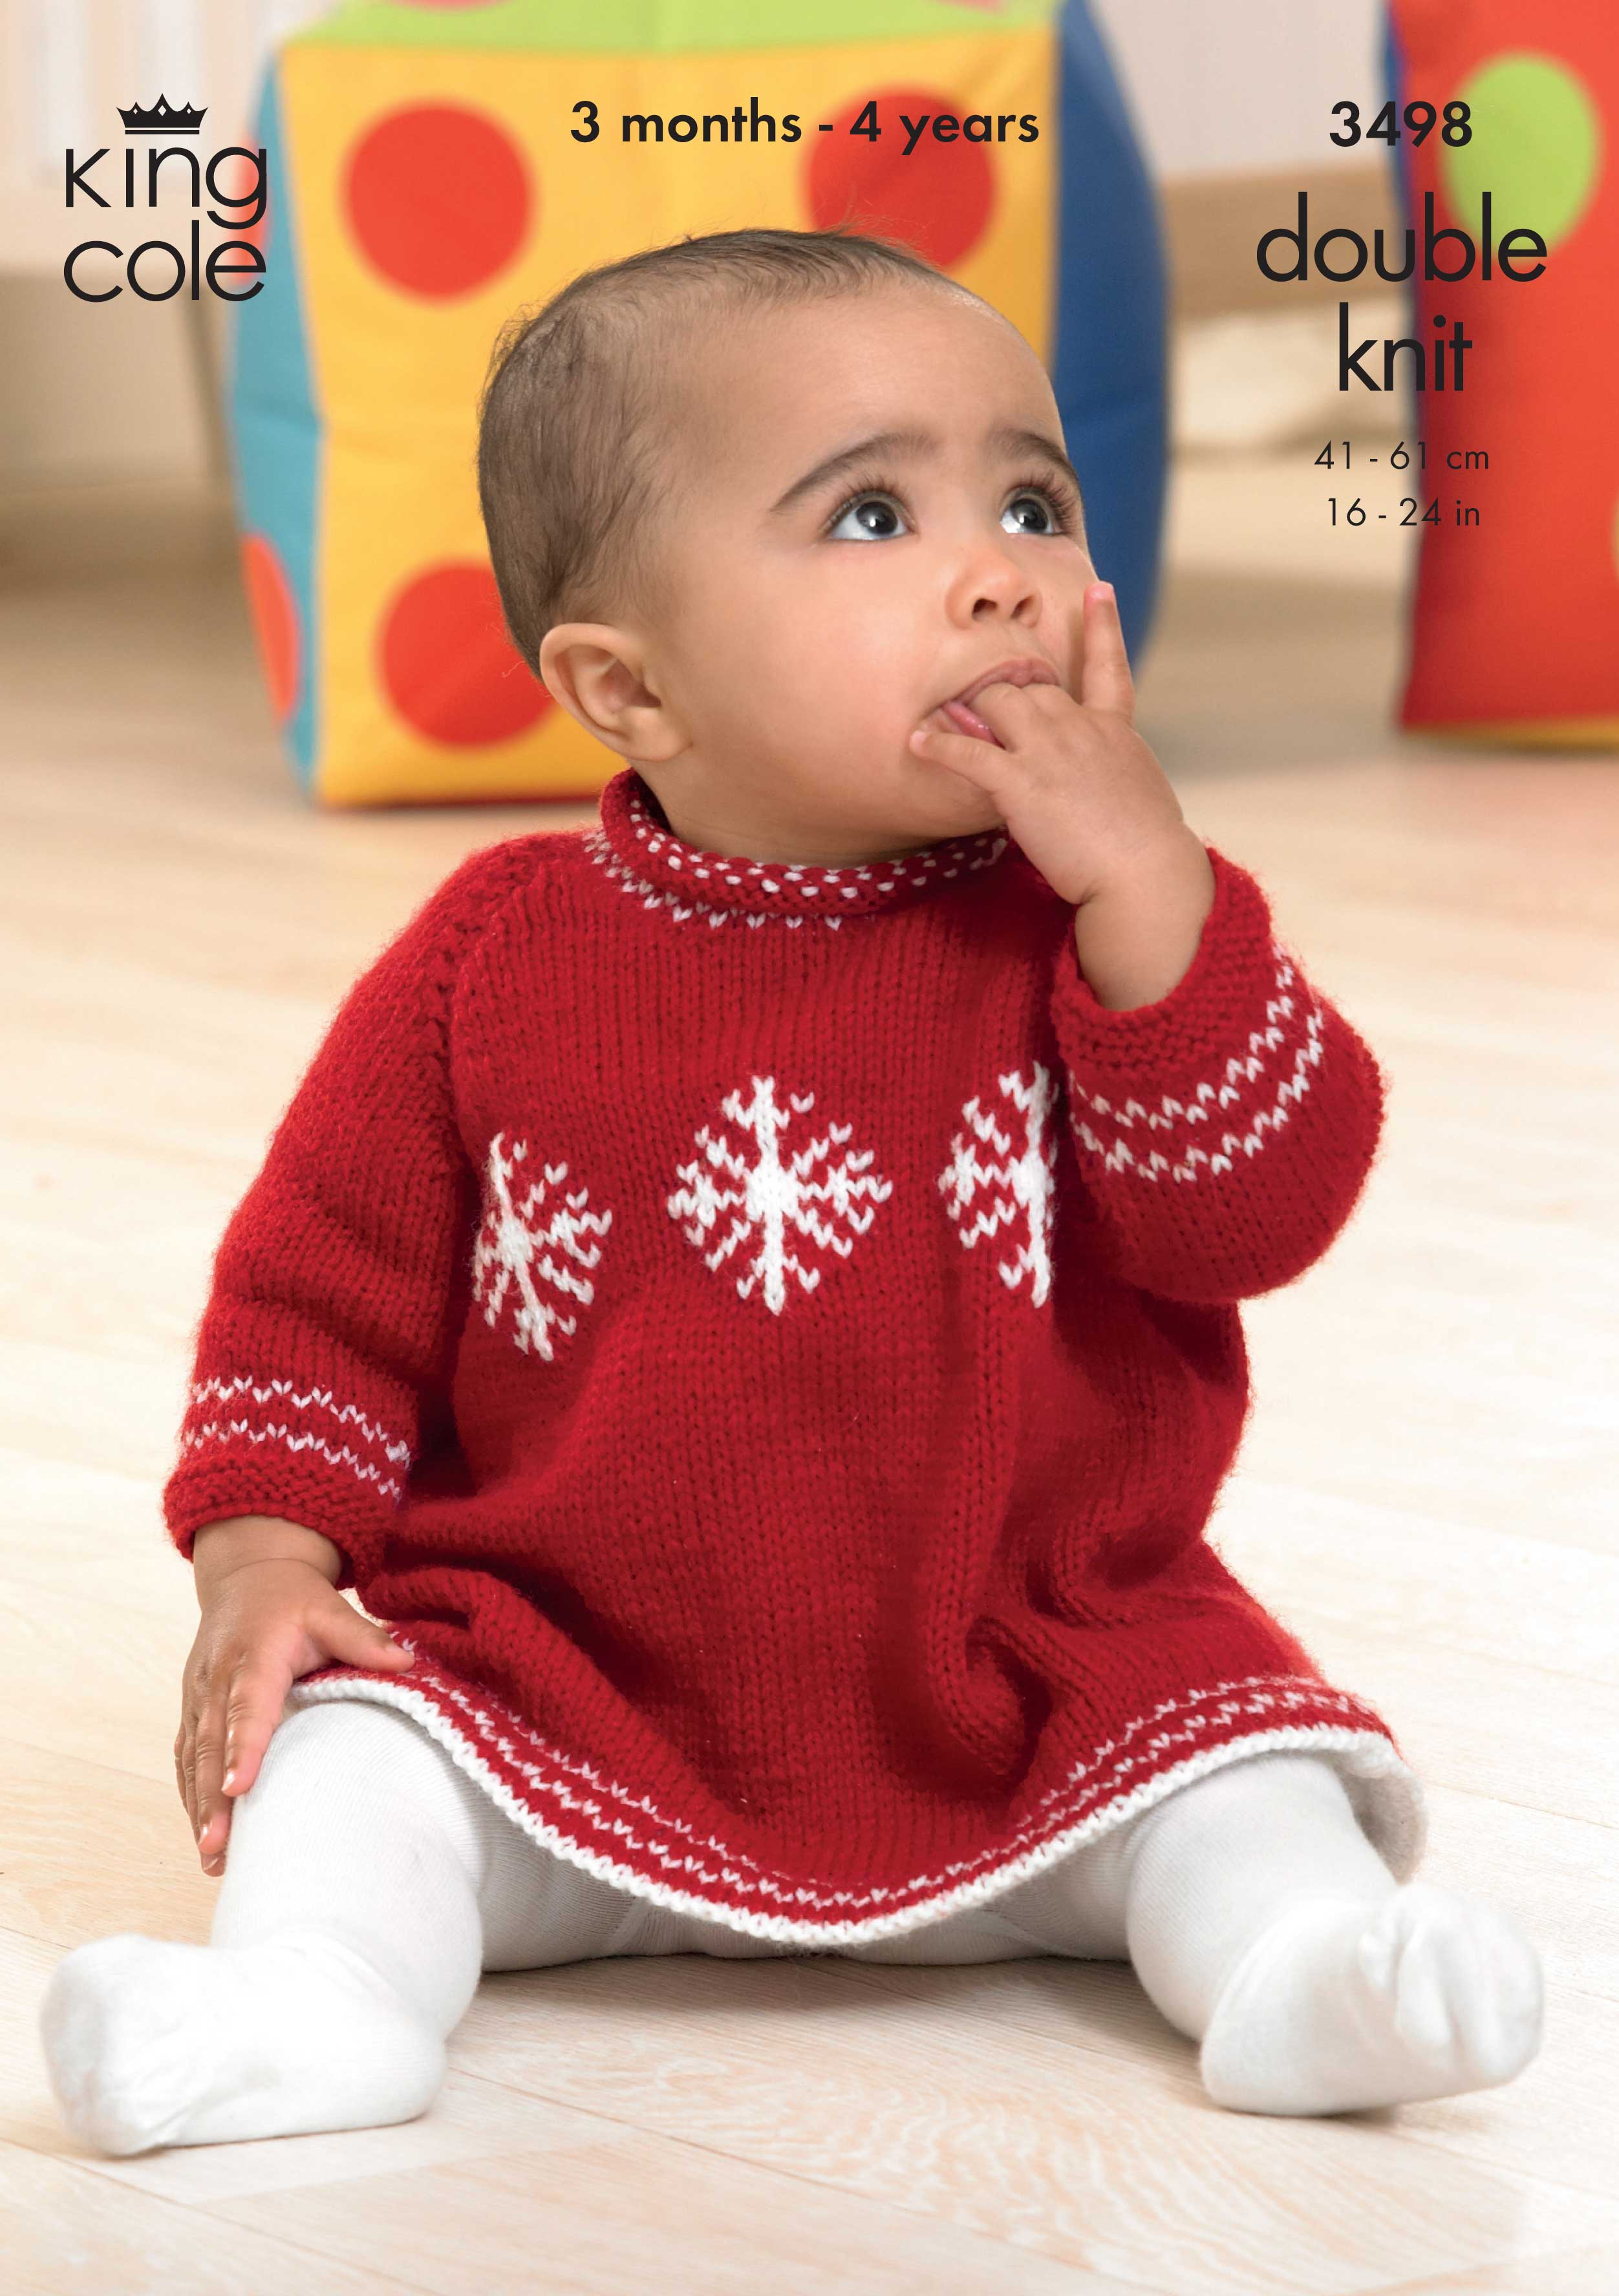 Double Knitting Baby Patterns Easy To Follow Christmas Sweater And Dress Knitted In Comfort Dk